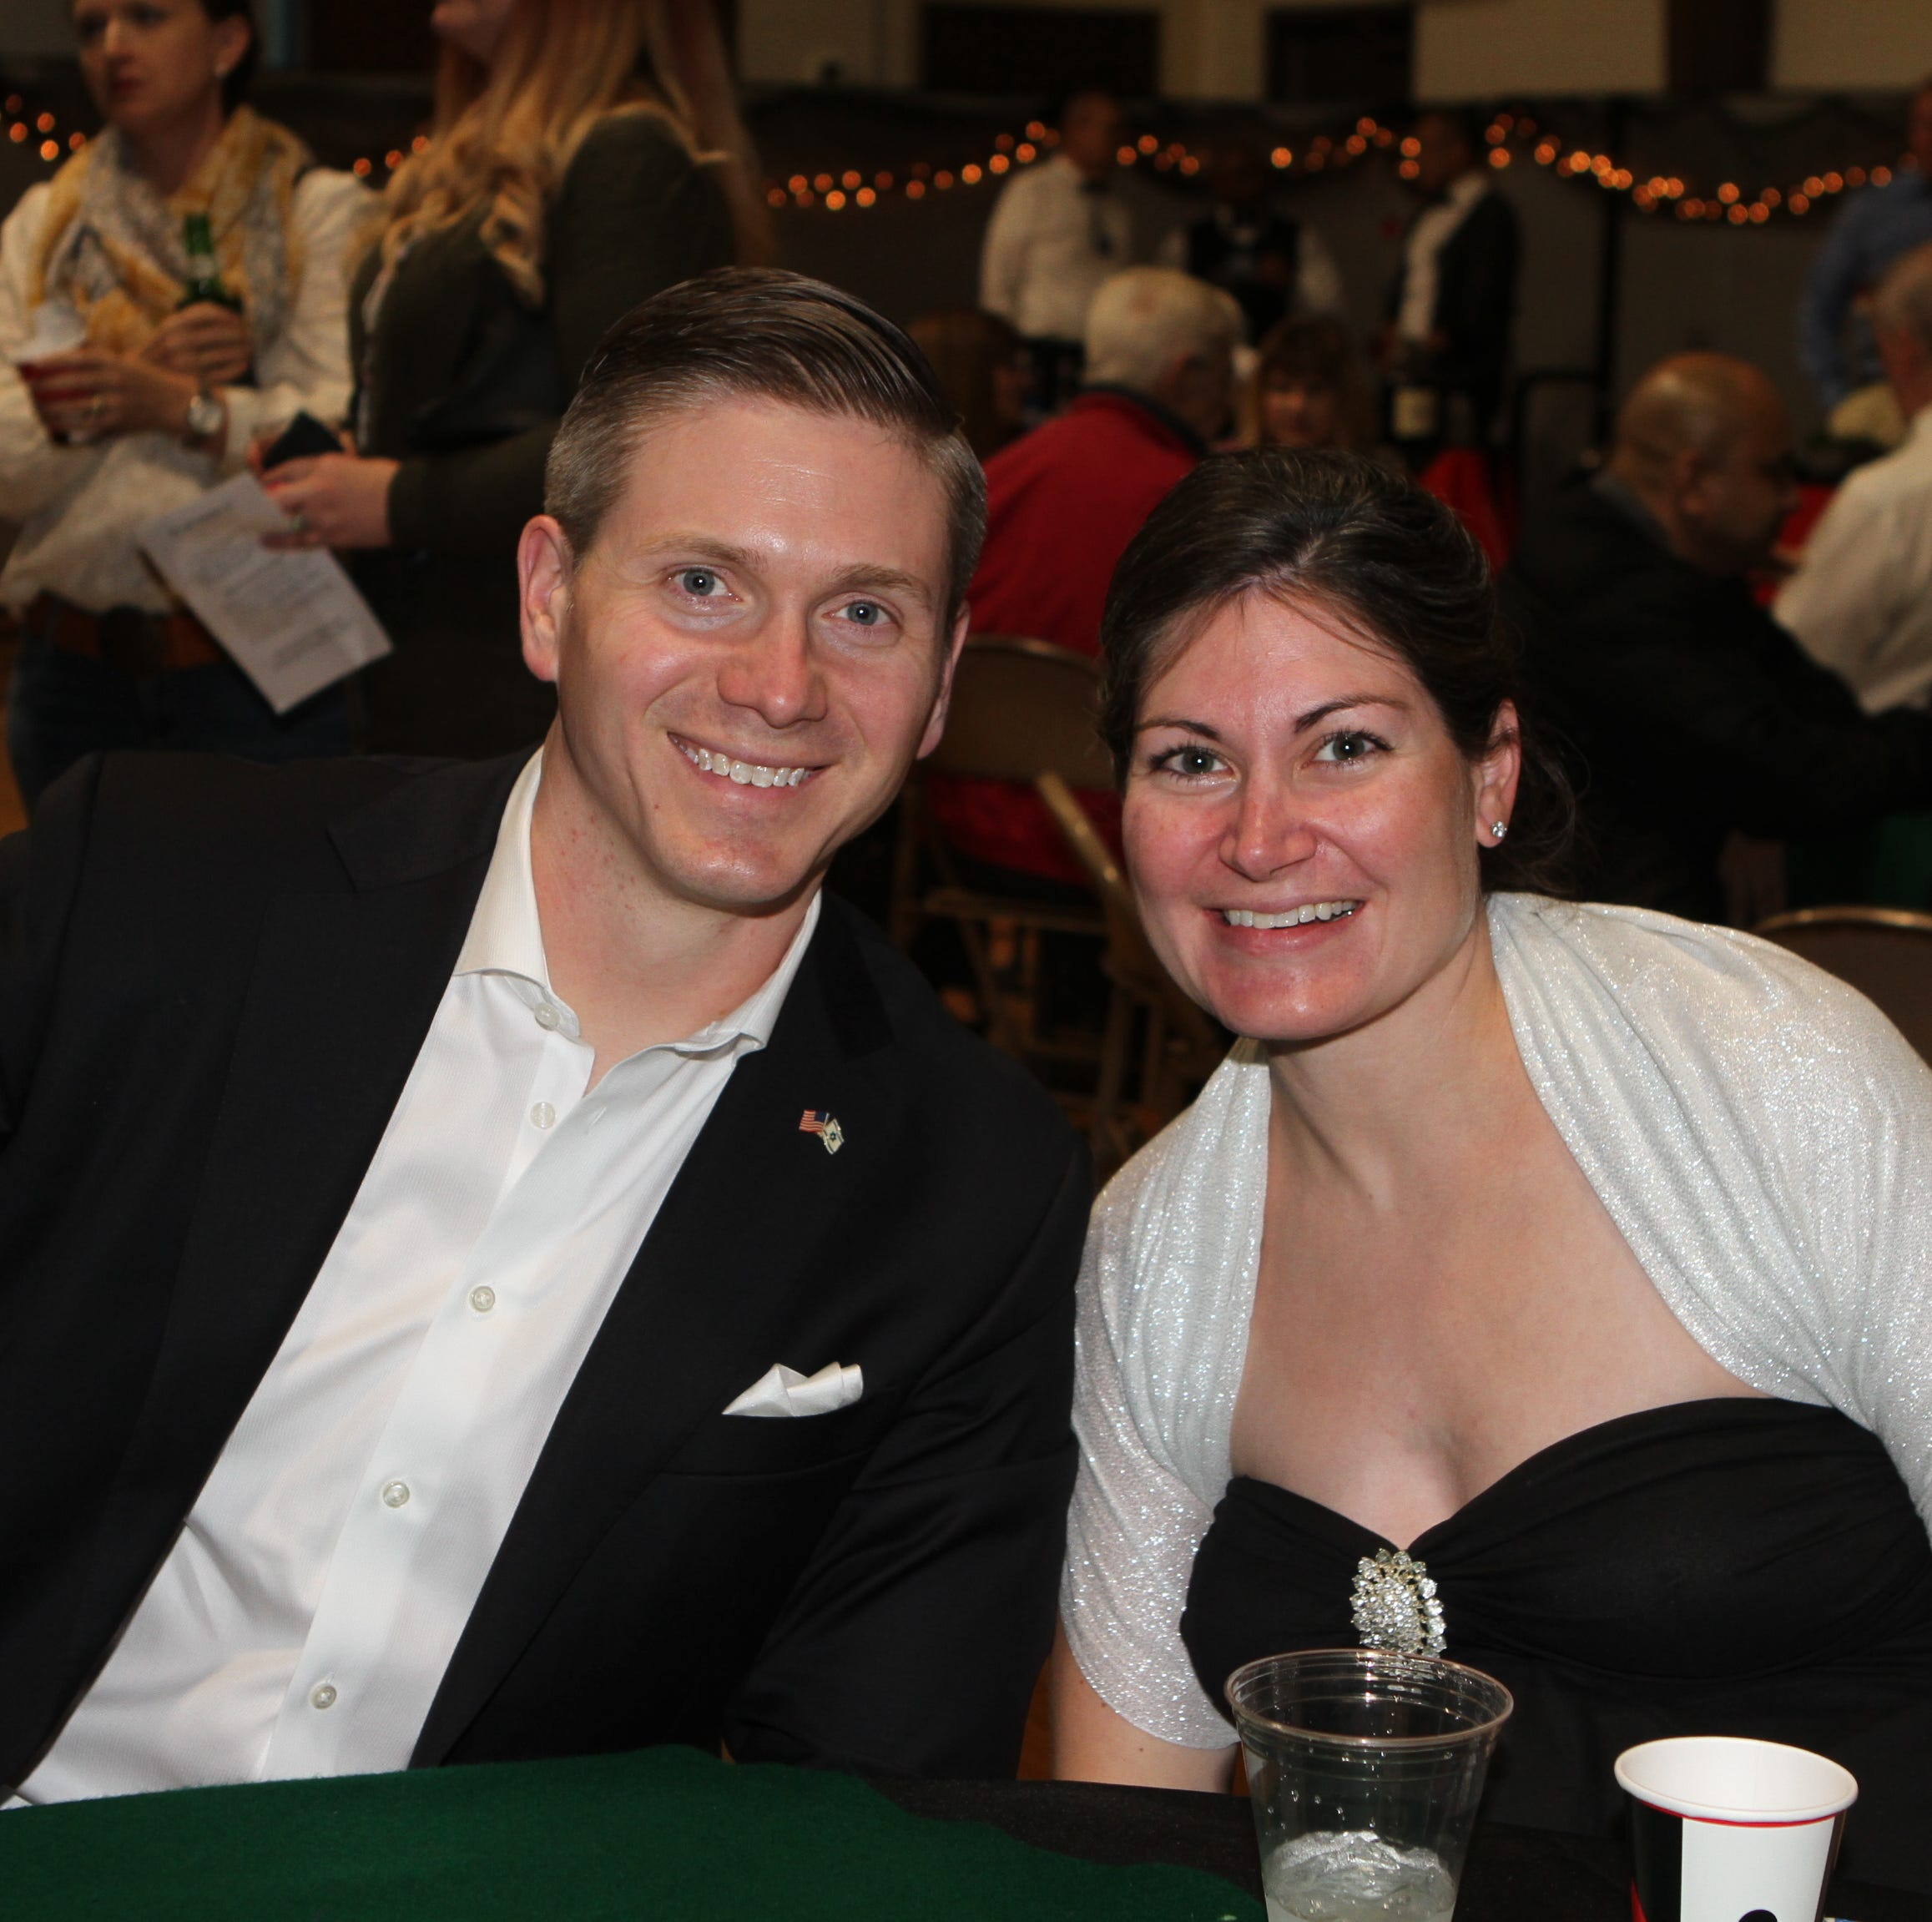 Players ante up for Immaculate Conception School in Casino Night fundraiser